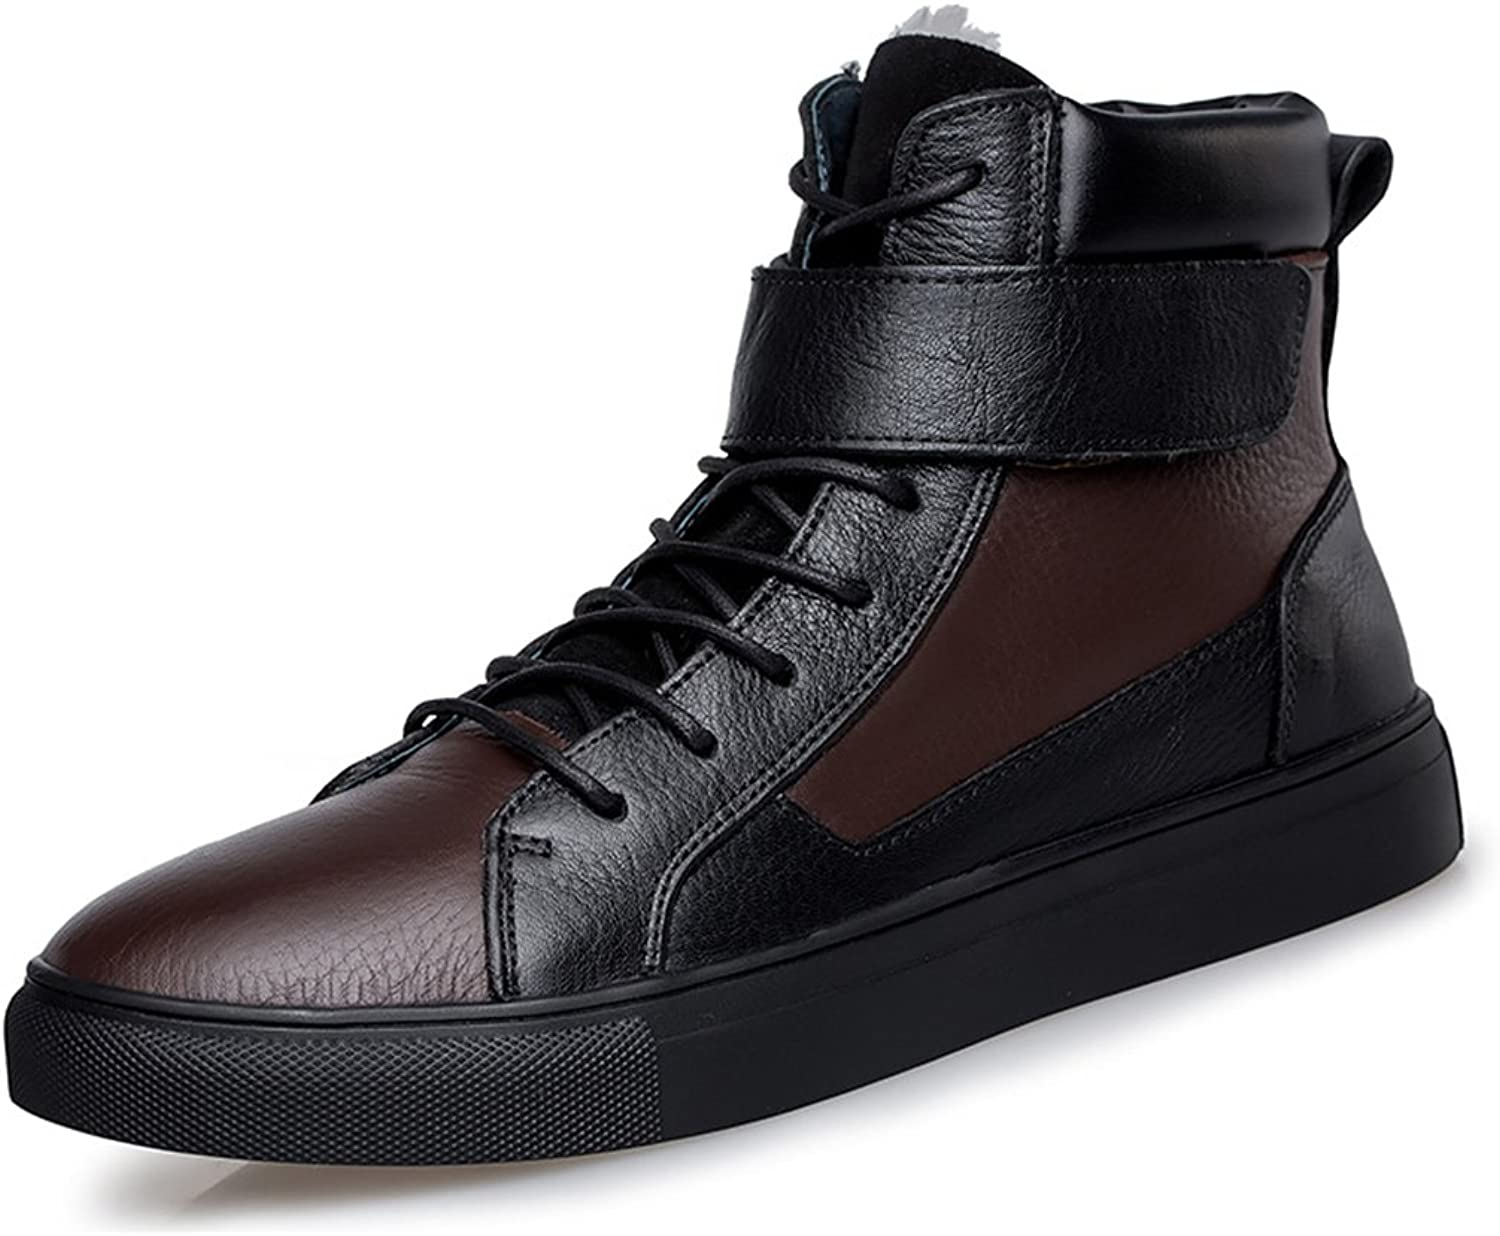 Goorape Men's Winter High Top Fur Lined Casual Leather Sneakers With Velcro Strap Warm Snow Ankle Boots